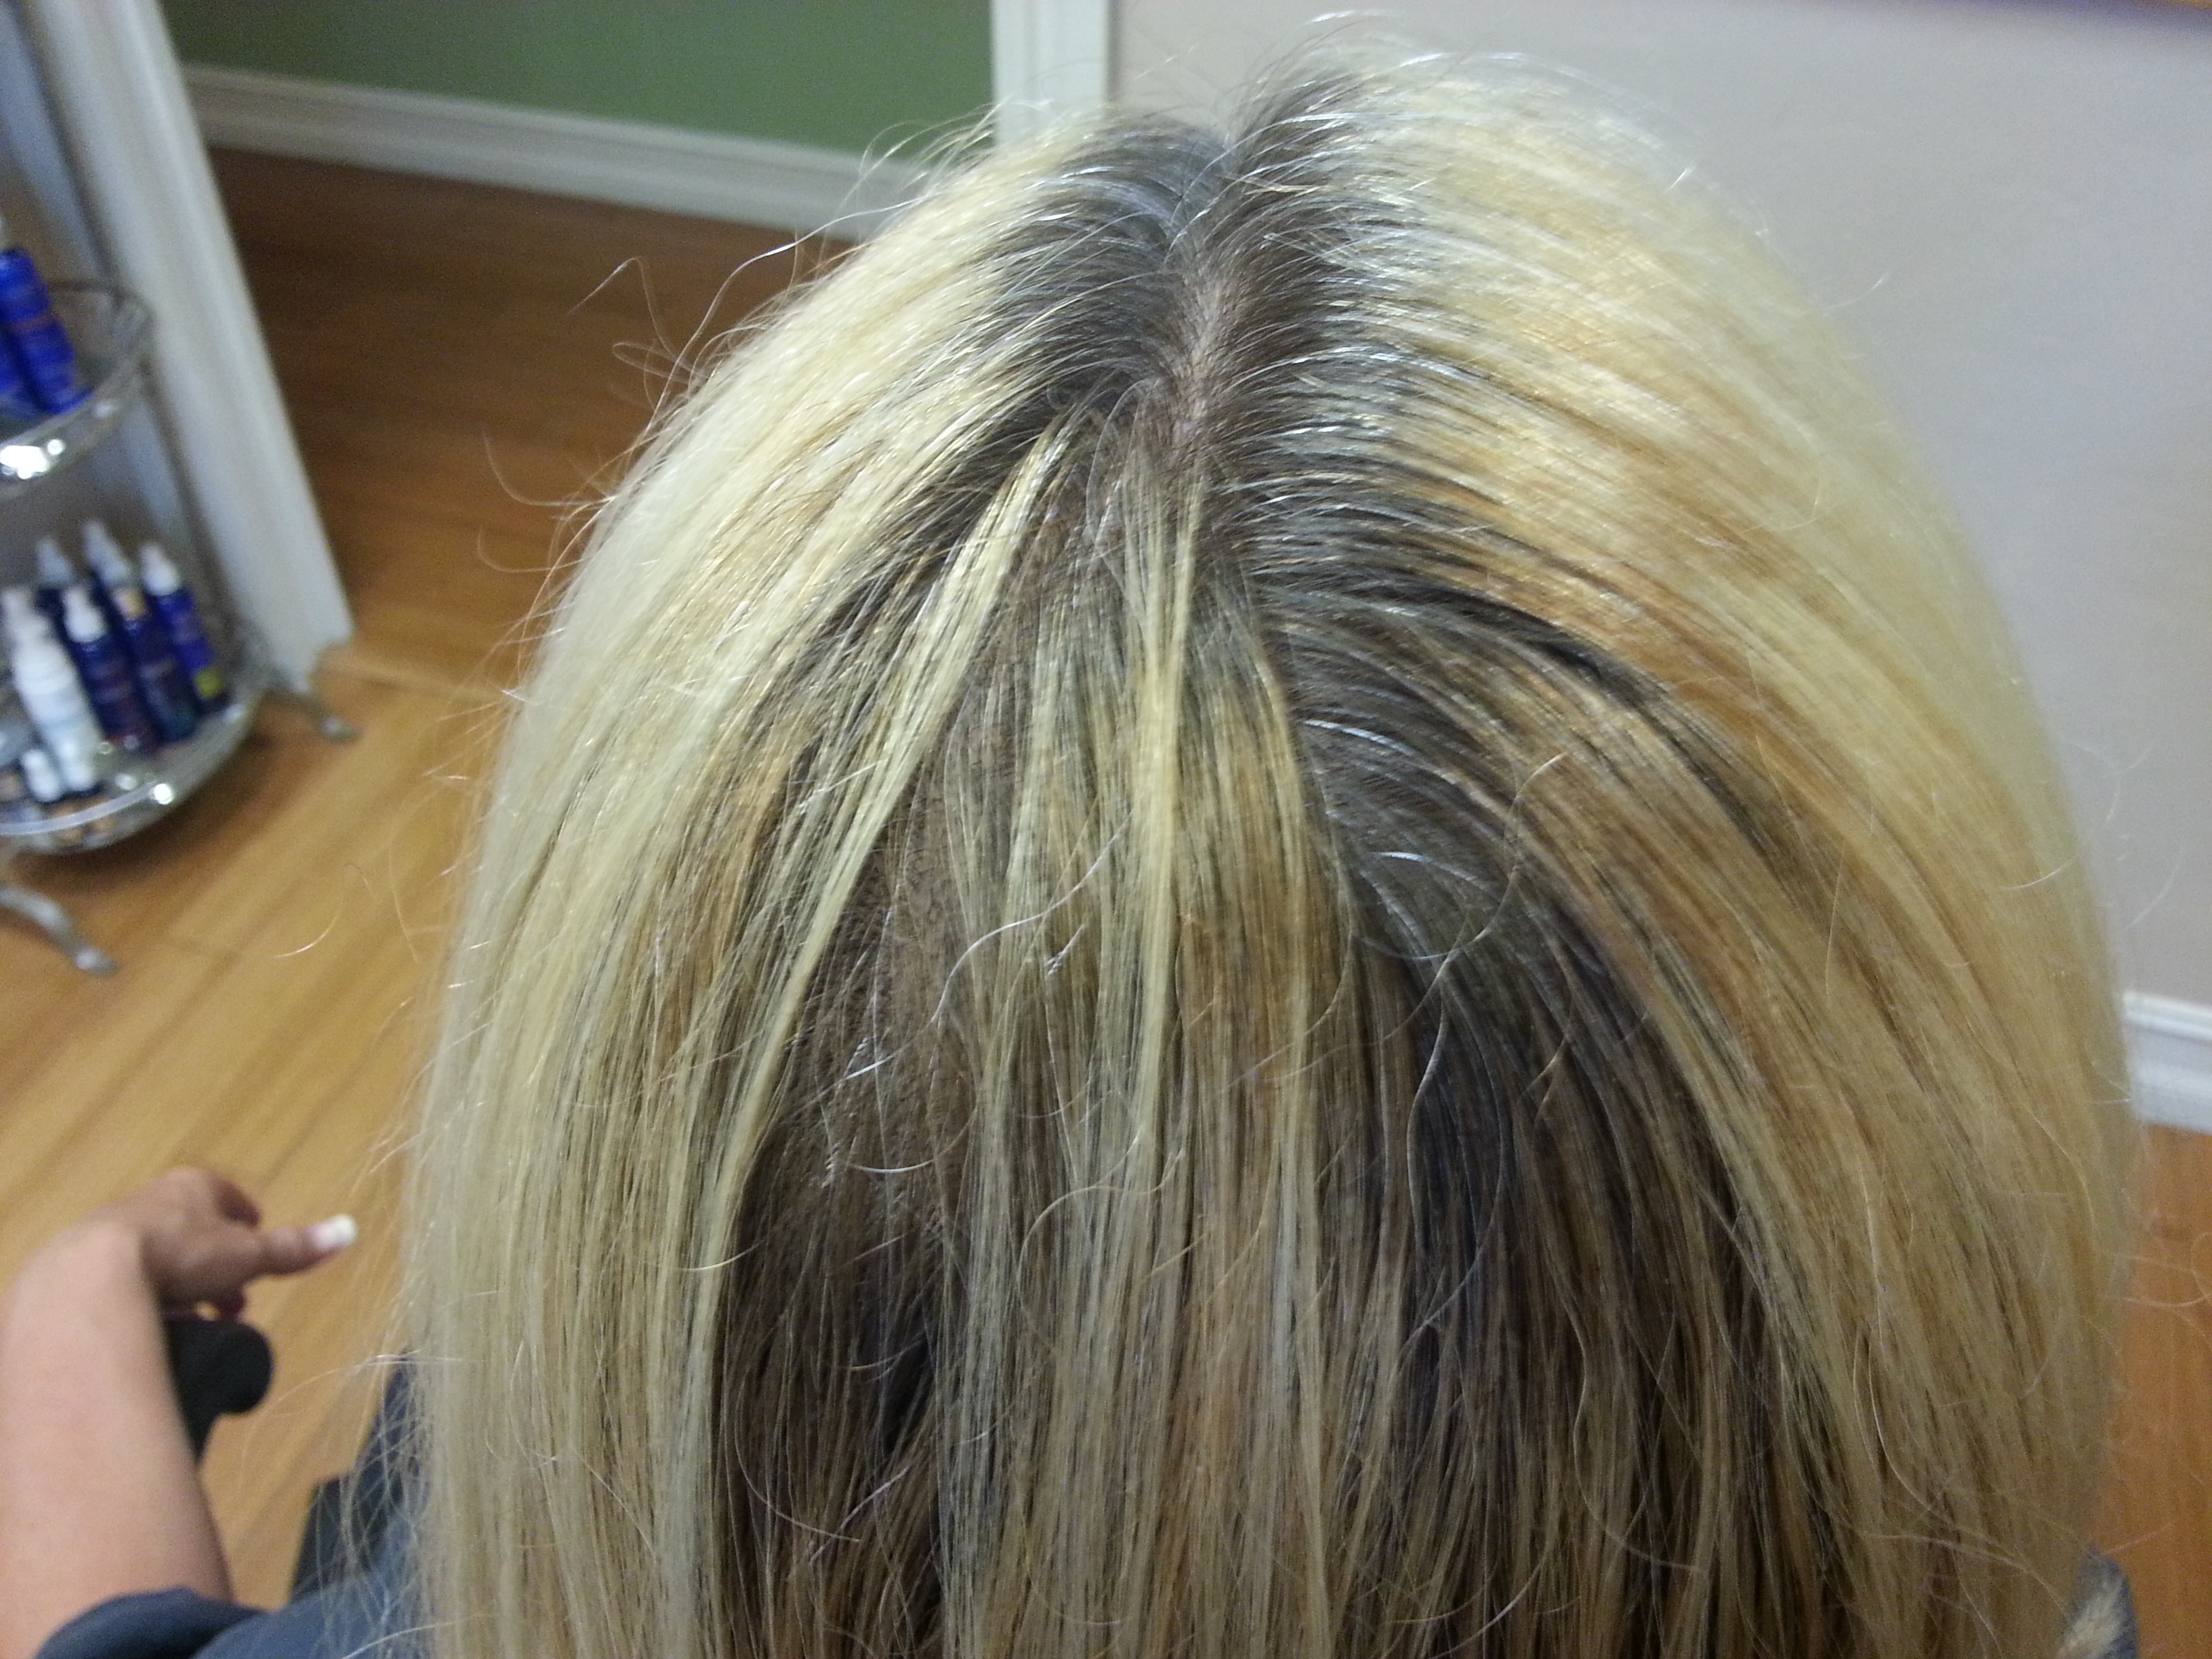 The Hair Color Review By Melanie Nickels Melanie Nickels Is The